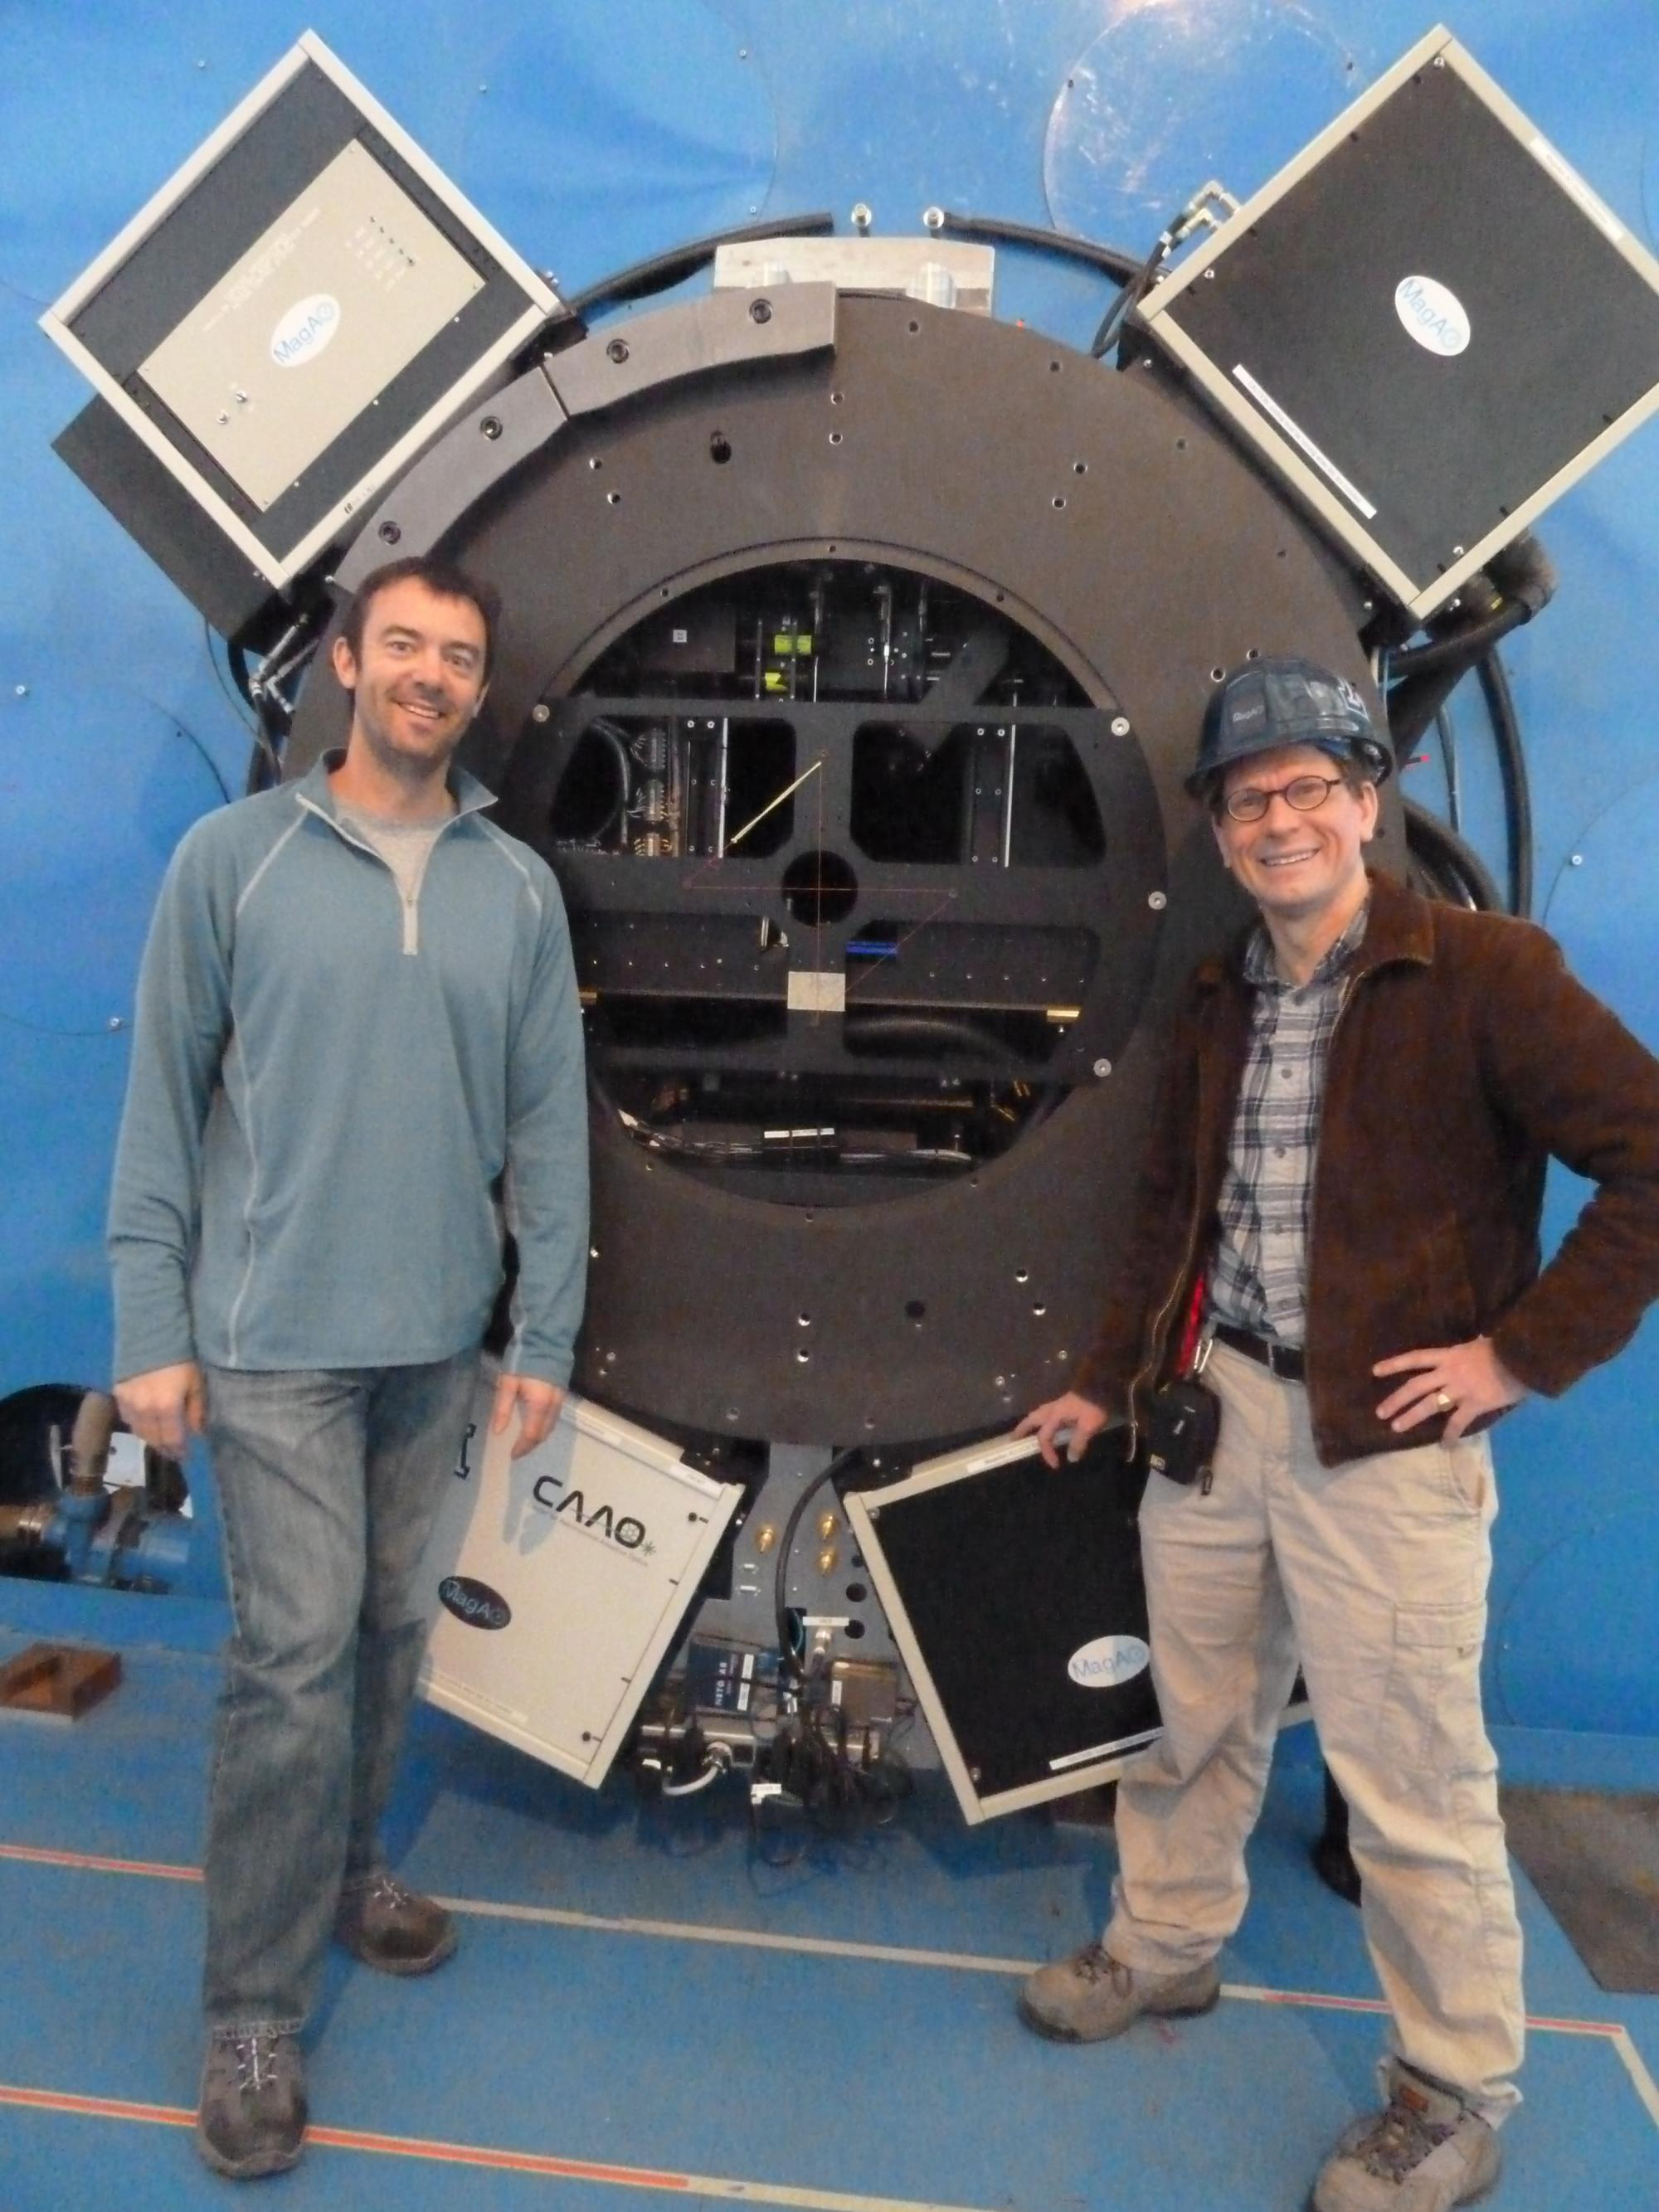 UA NASA Sagan Fellow and VisAO instrument scientist Jared Males  and UA Astronomy Professor and MagAO project scientist Laird Close with the VisAO camera and MagAO wavefront sensors at the focus of the 6.5m Magellan telescope that were used to make the vi